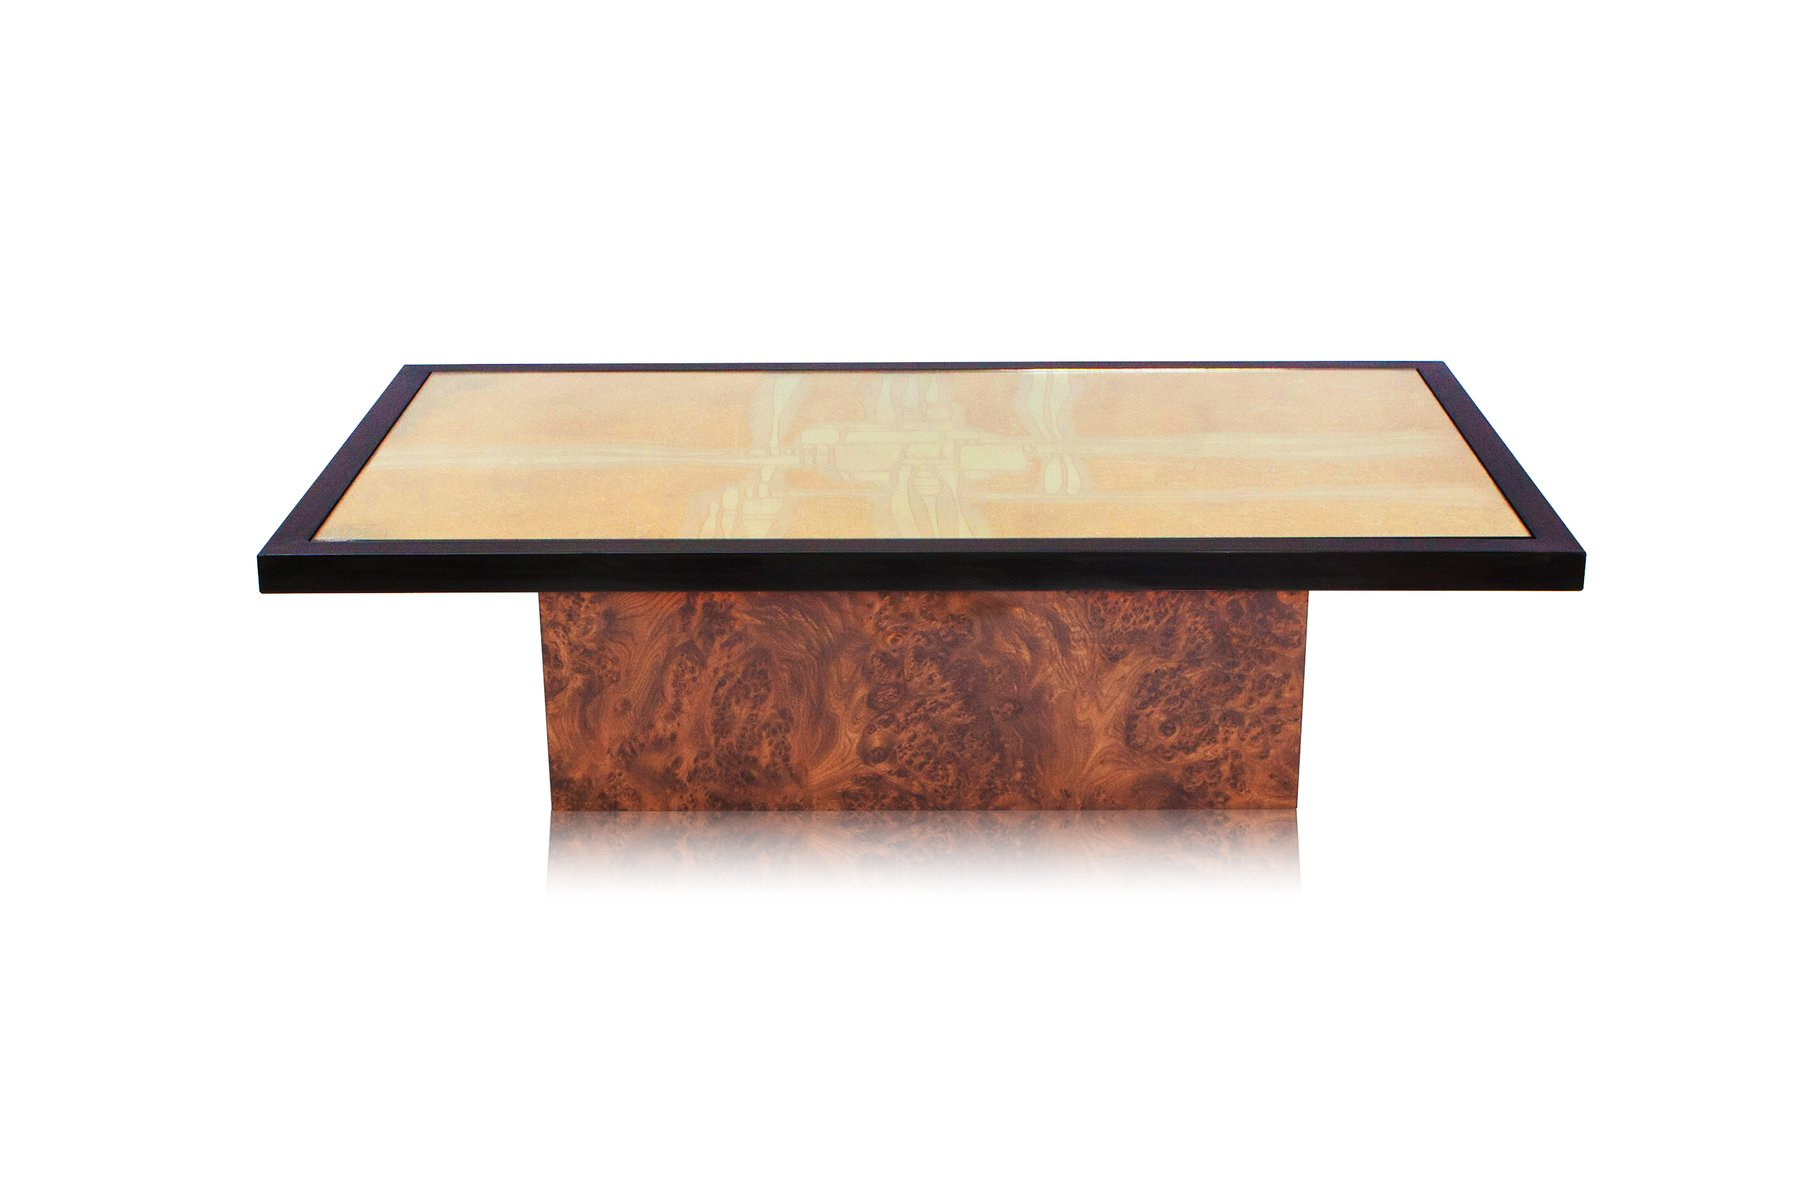 Etched Brass Coffee Table by Maho 1970s for sale at Pamono